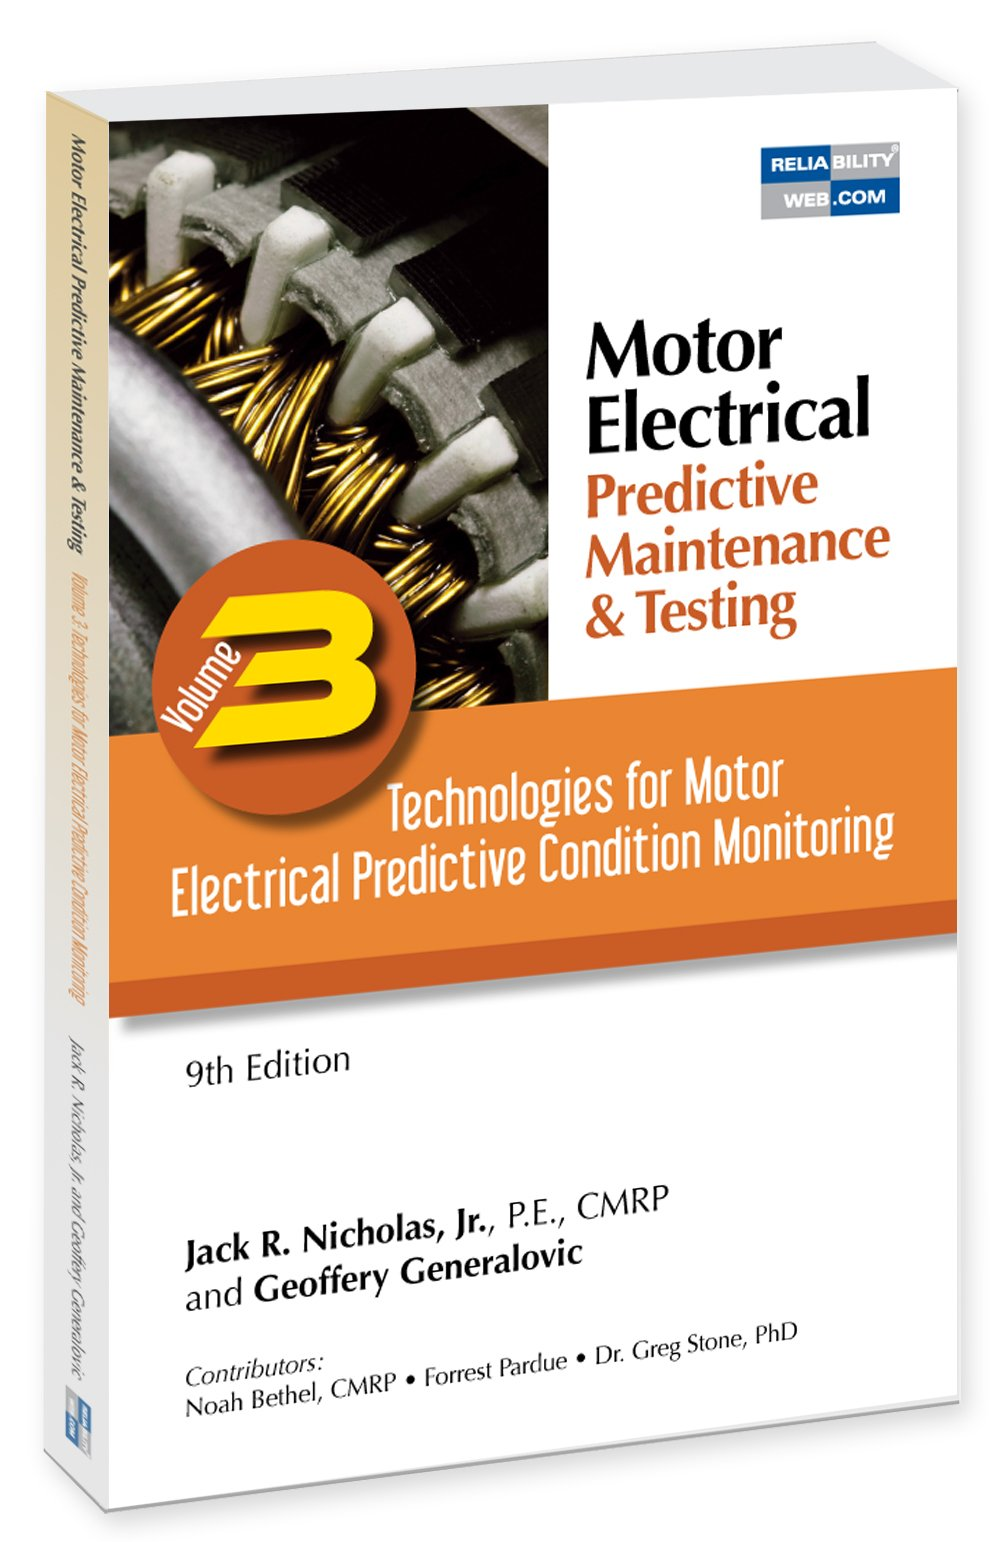 Technologies for Motor Electrical Predictive Condition Monitoring pdf